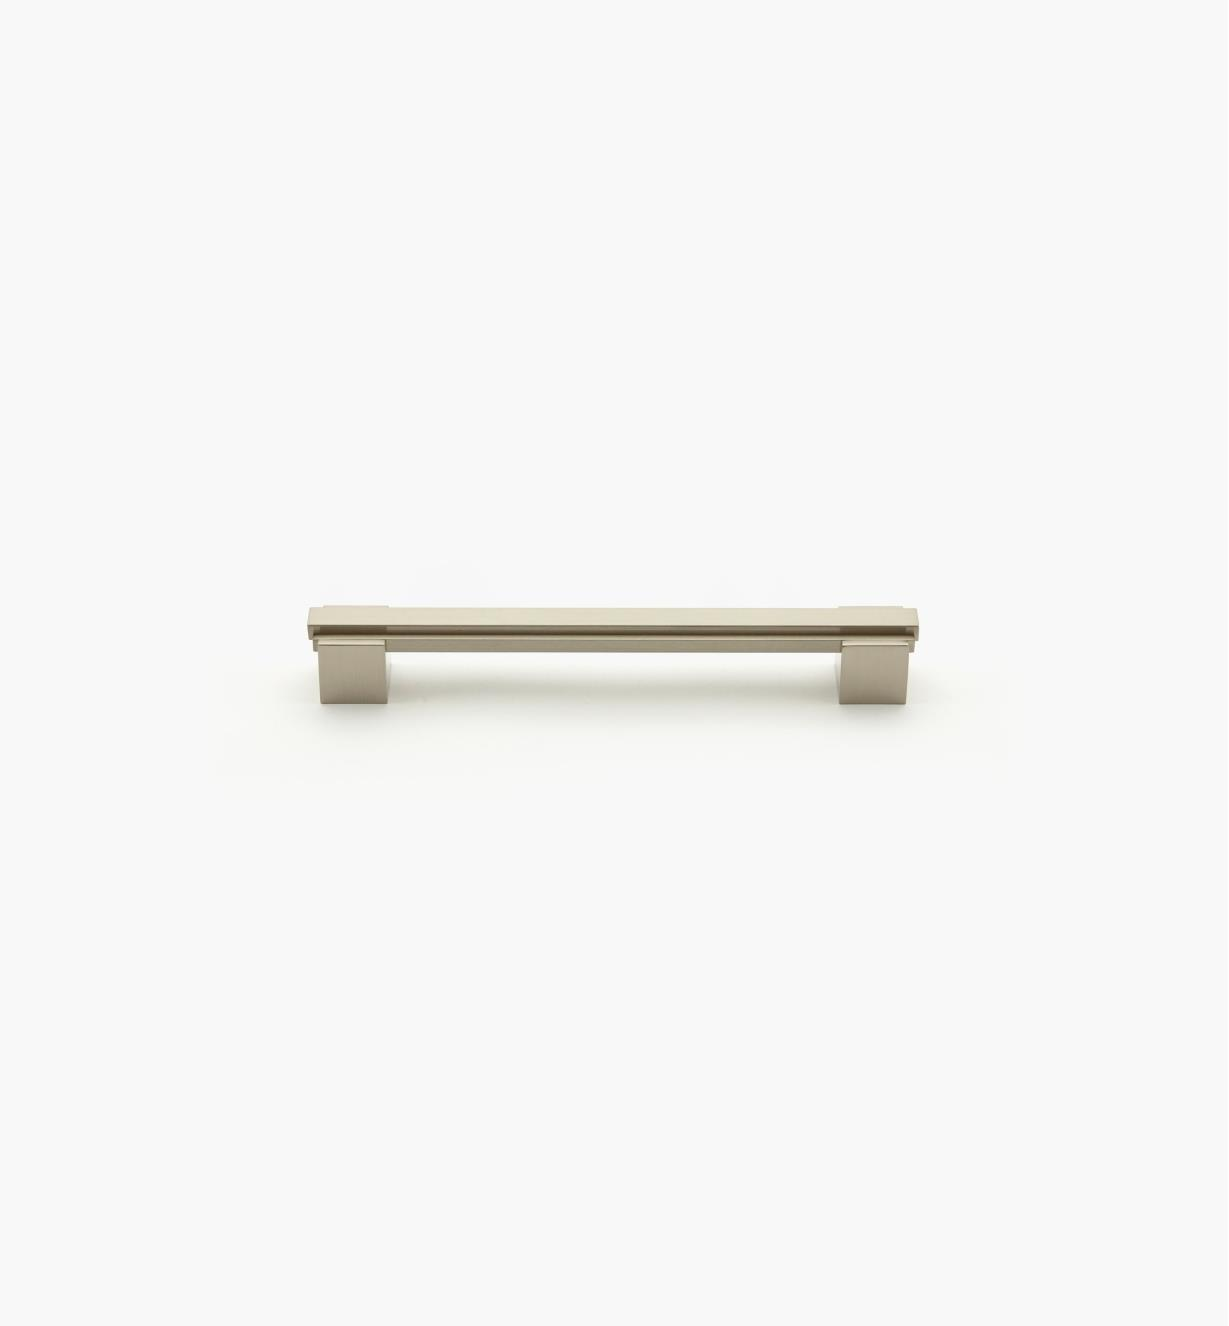 02W1362 - Chicago 192mm Satin Nickel Handle